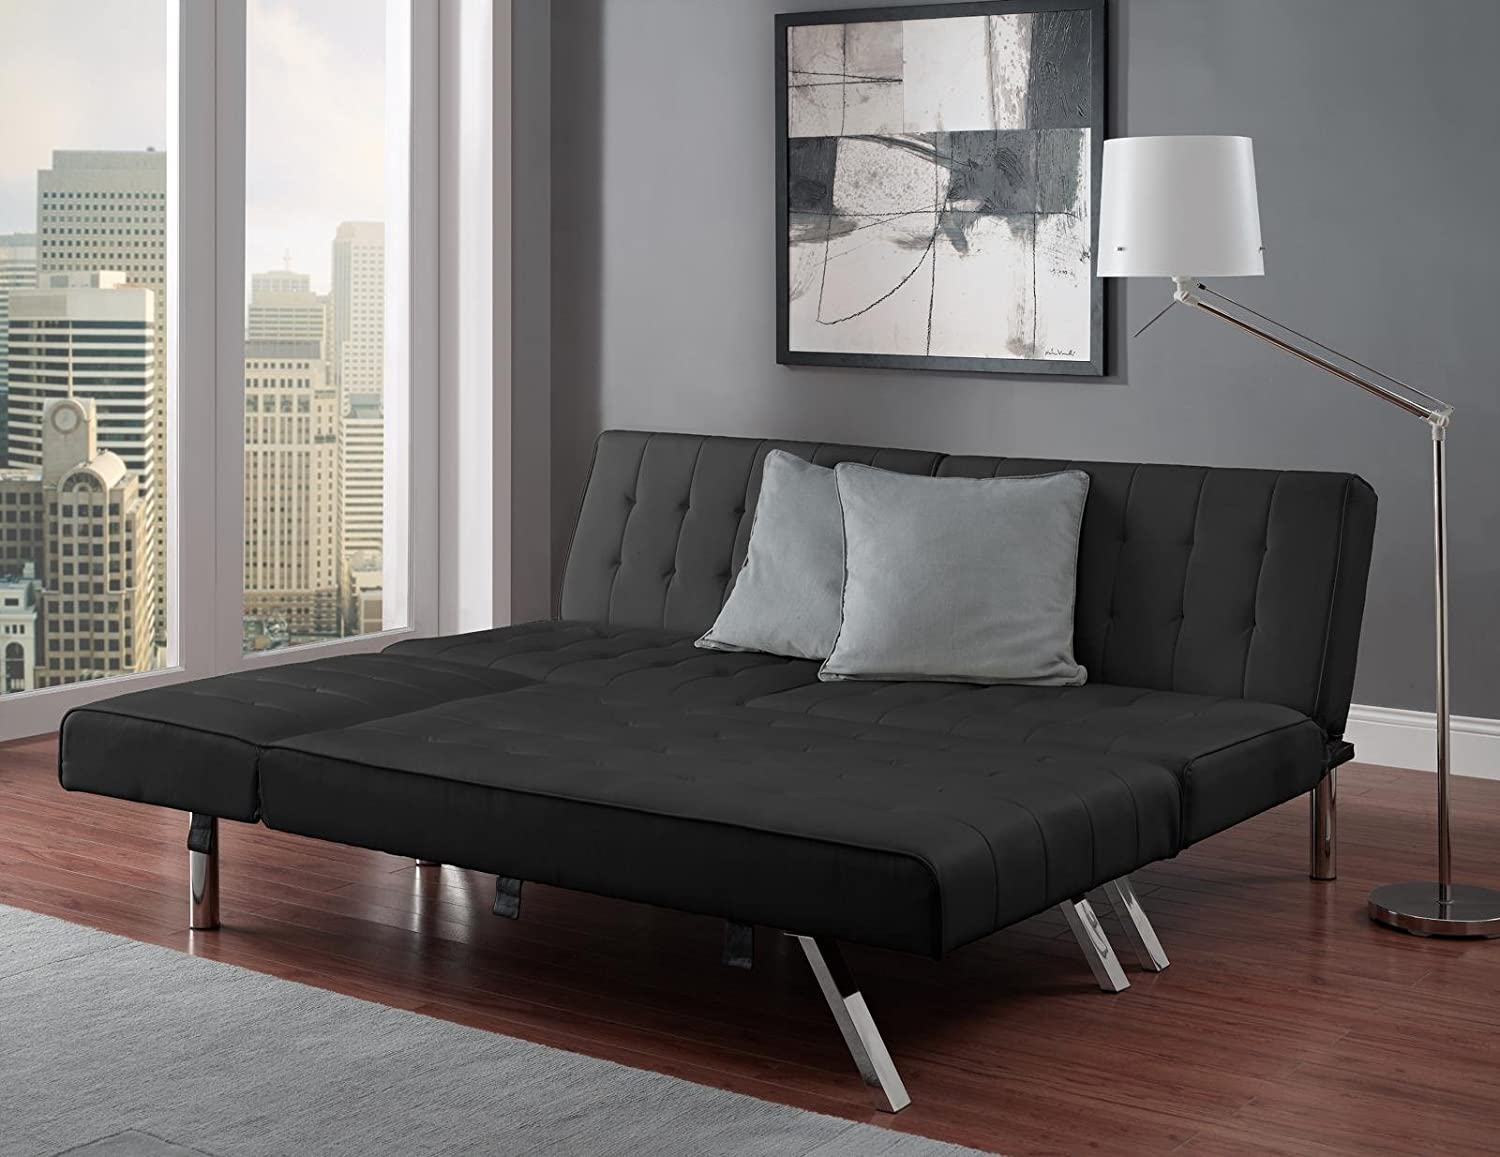 lounge emily chair attachment with chaise lounger dhp of sofa vanilla bed